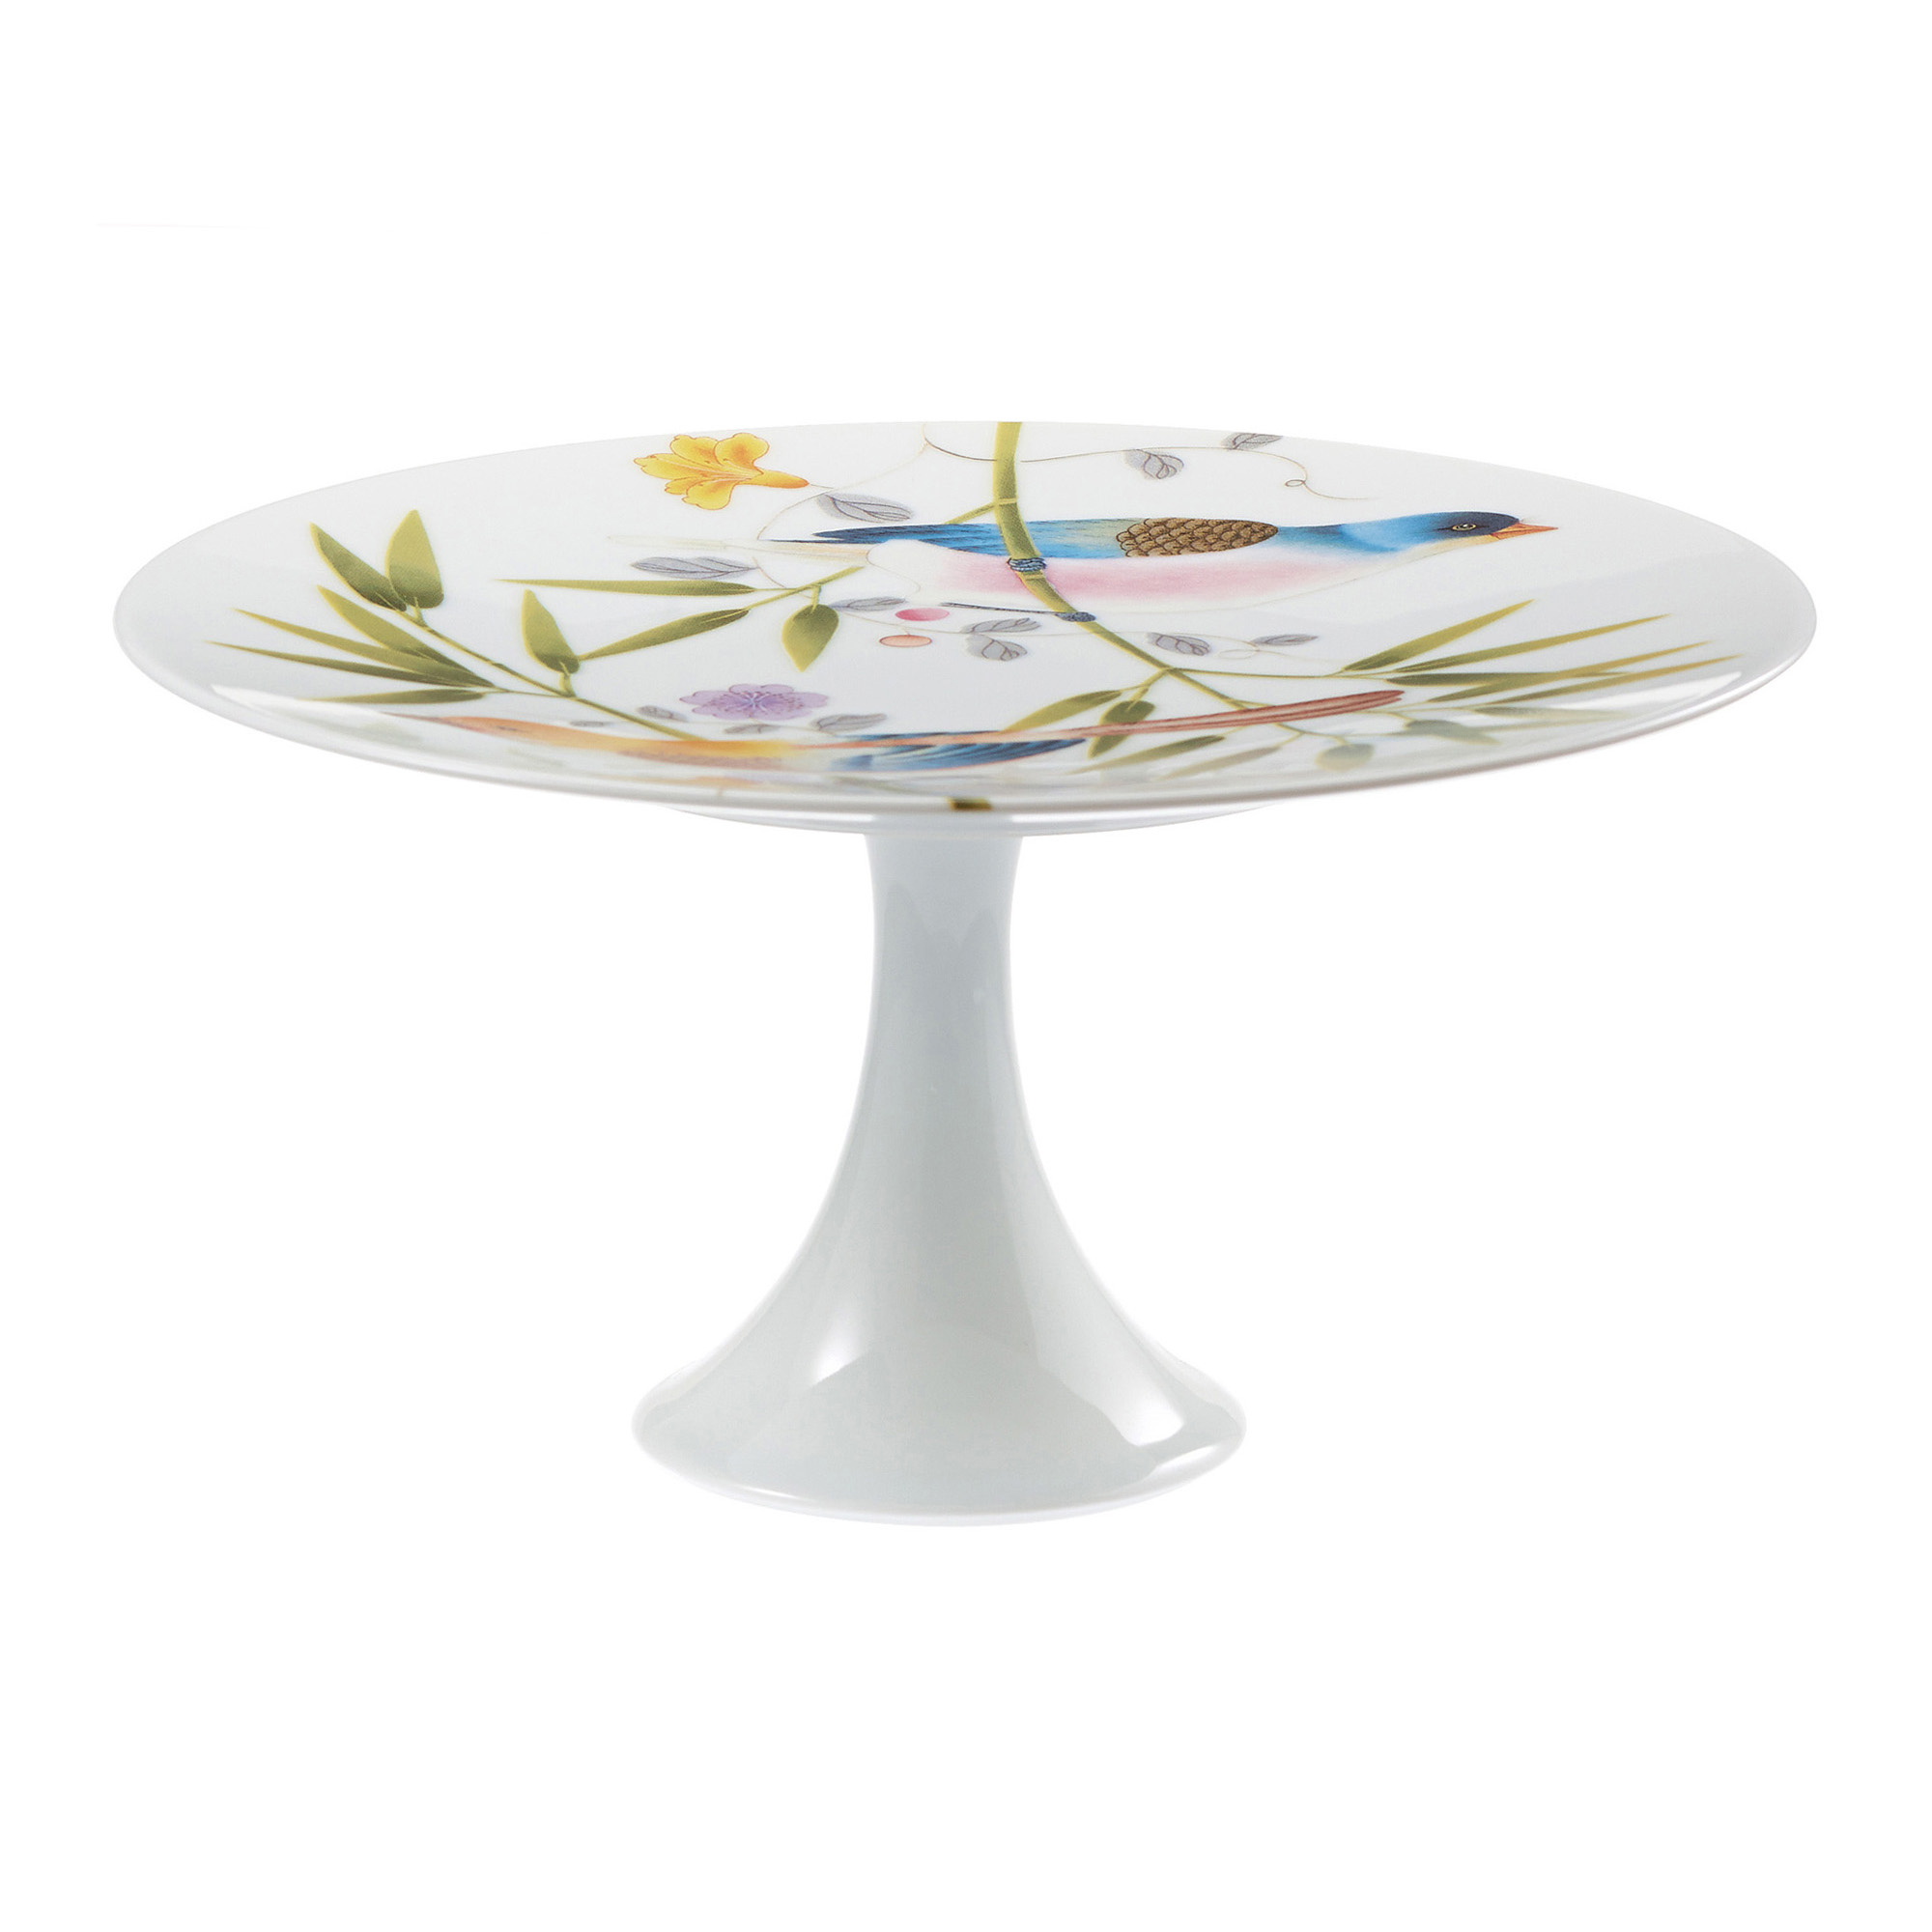 Raynaud Paradis Petit Four Stand, Medium #2 White